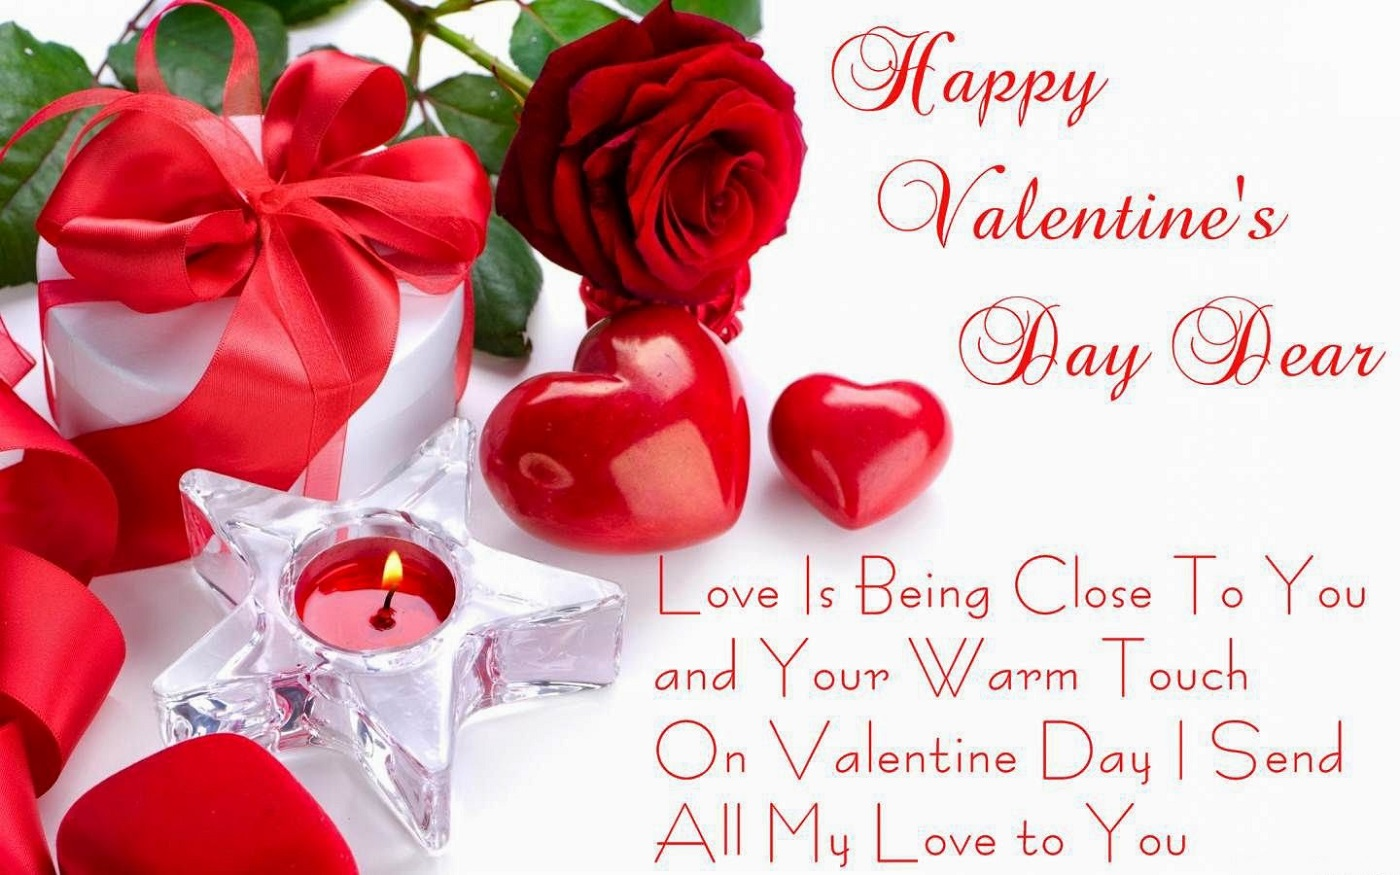 Happy Valentines Day Quotes For Husband 2017. U201c